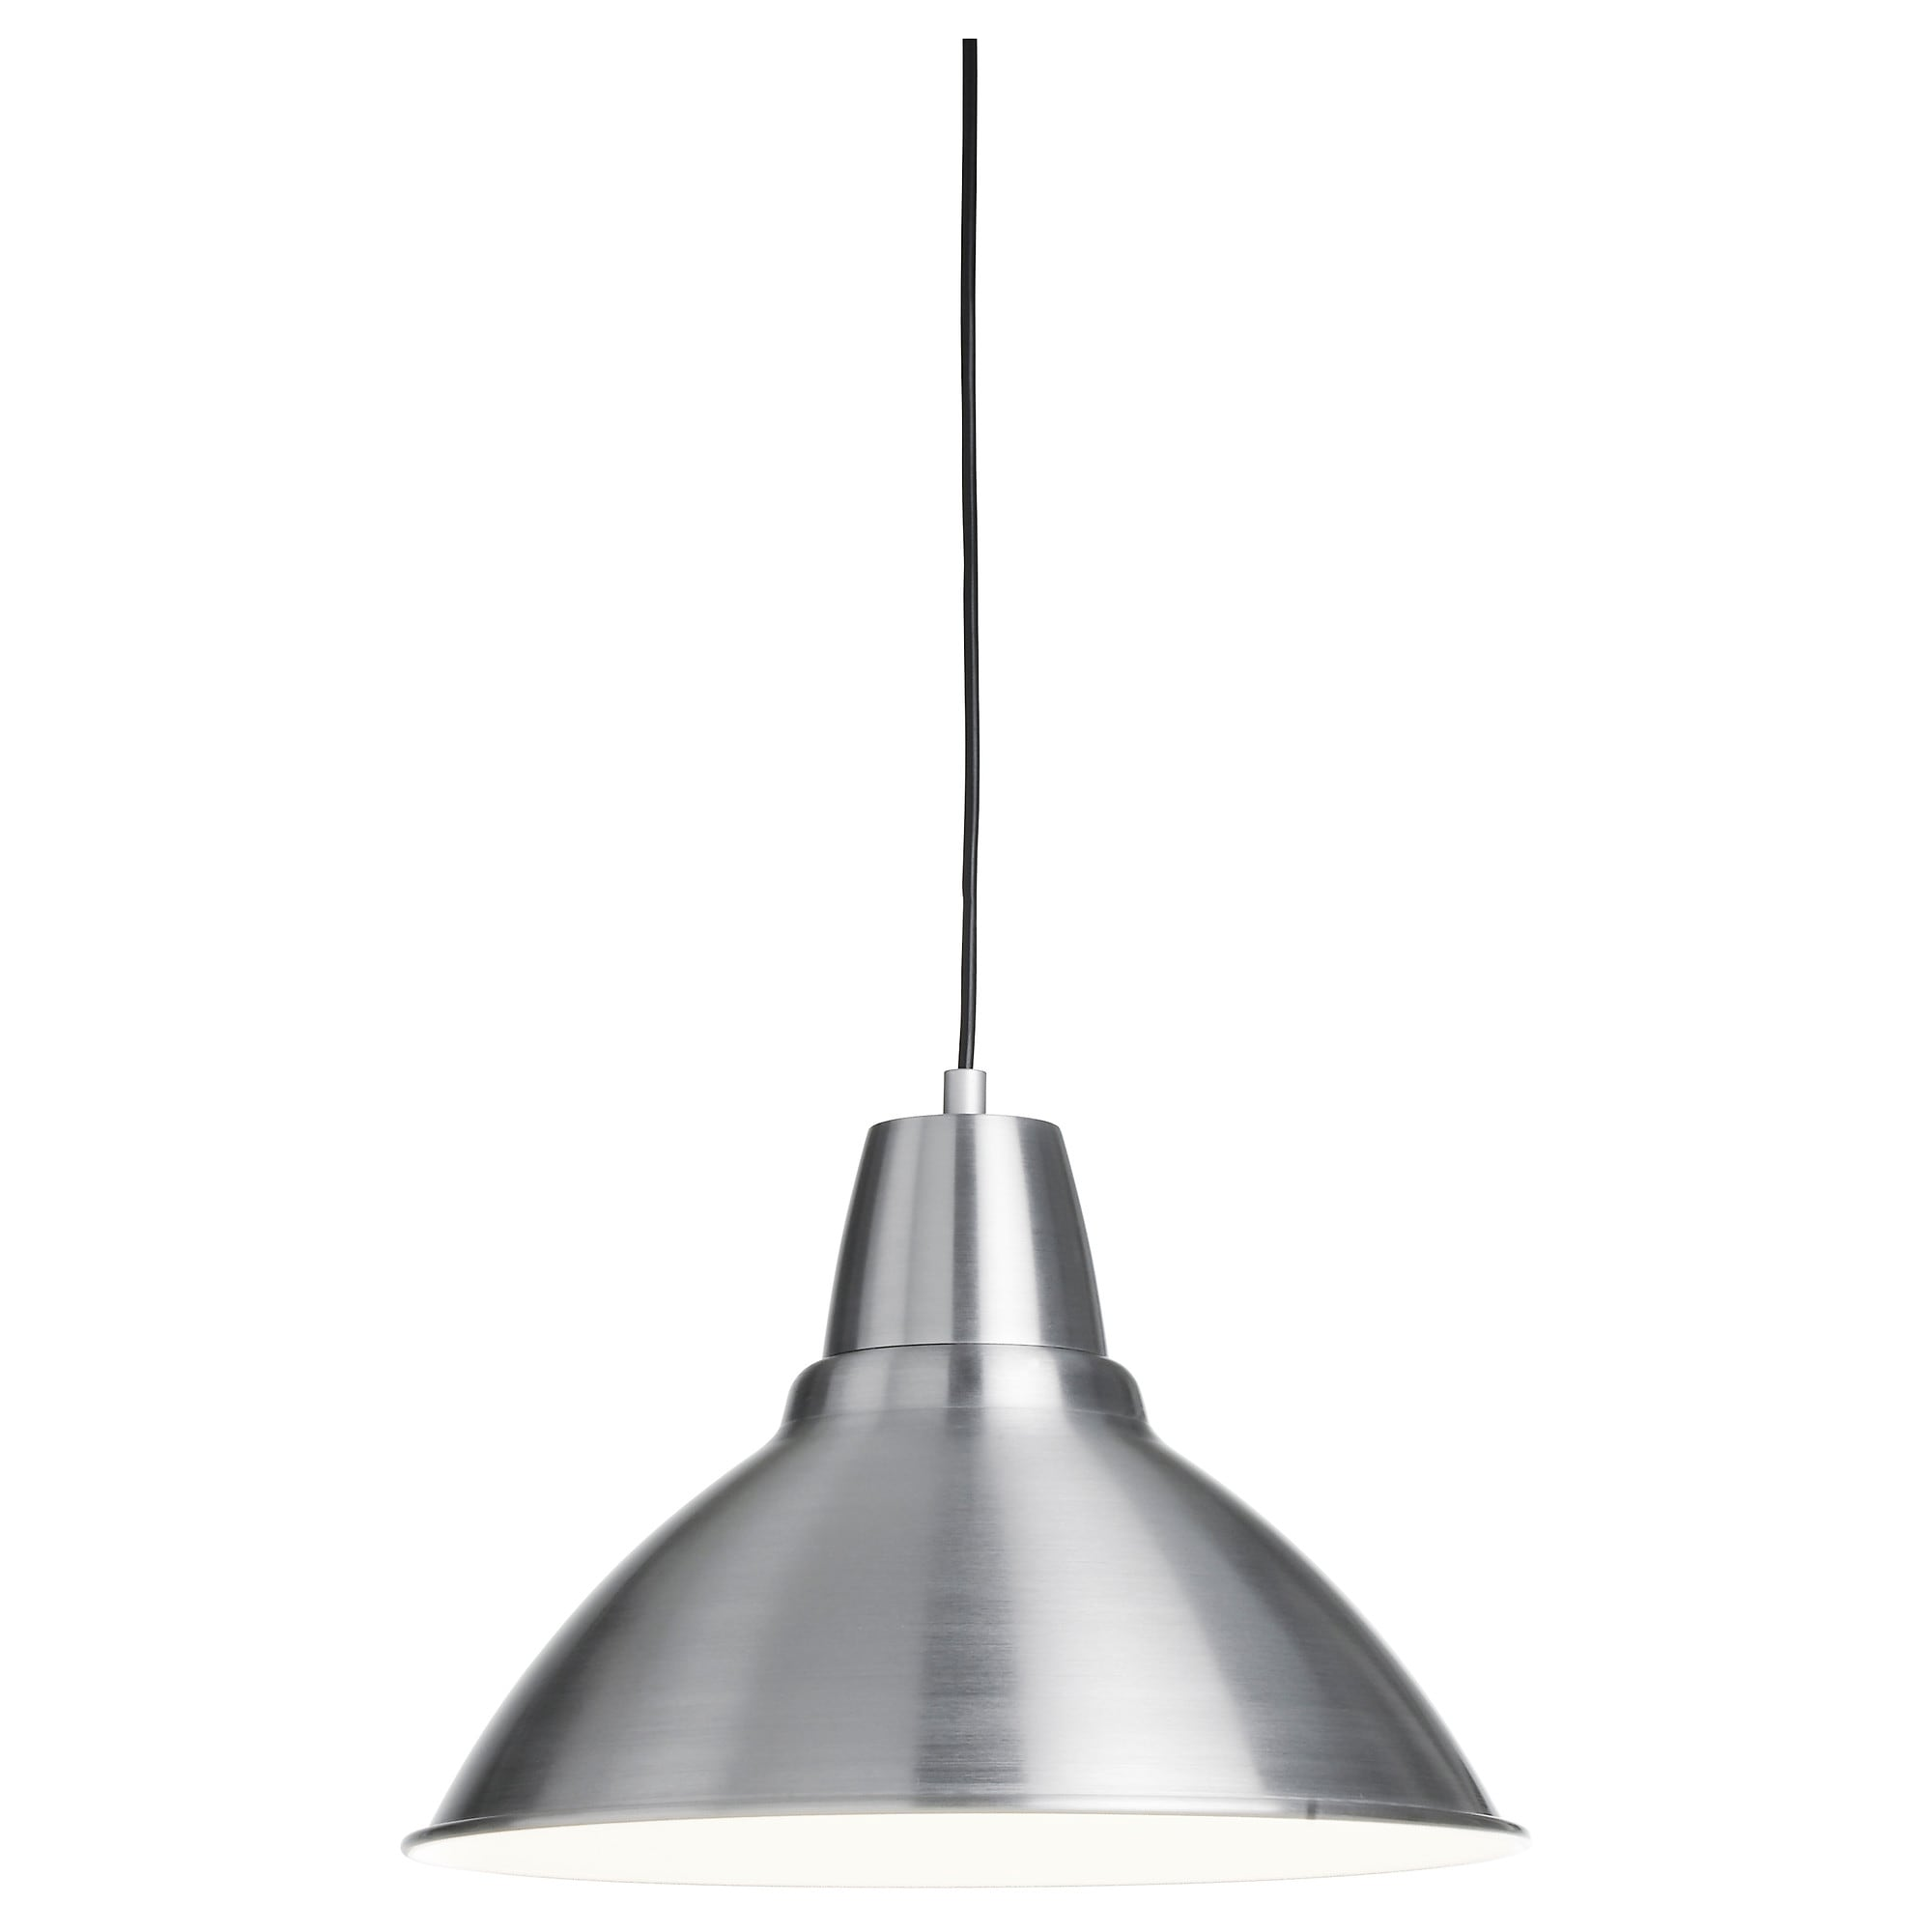 FOTO pendant lamp with LED bulb, aluminum Diameter: 15